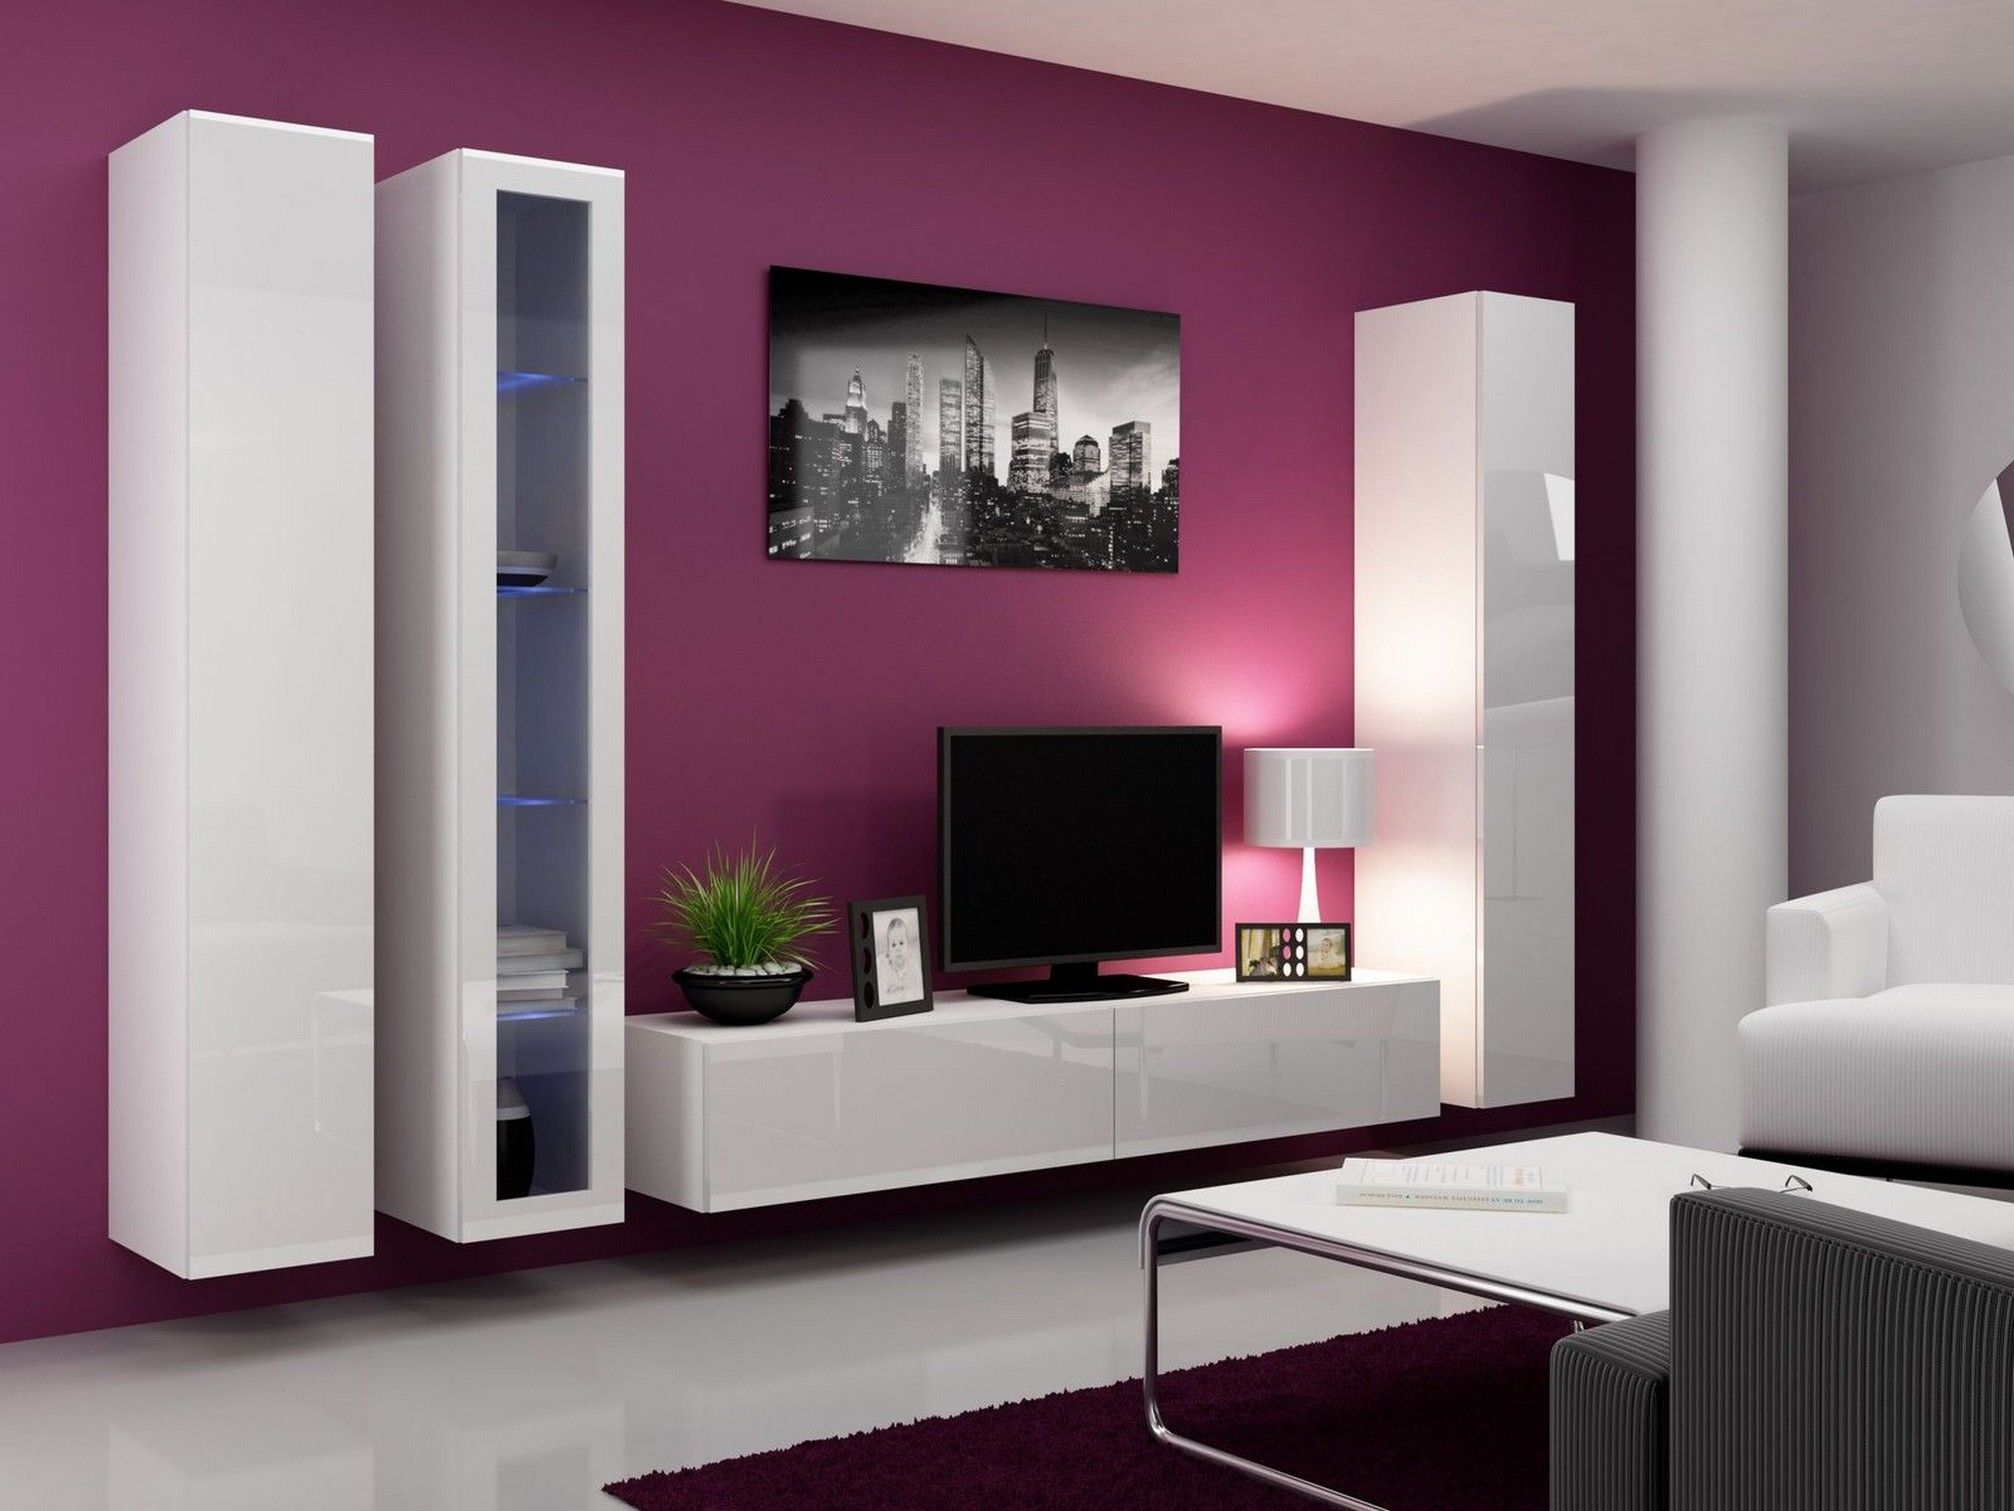 Pink Color Schemes Ideas For Living Room With Modern Wall Mounted Tv Stands Jpg 2014 1511 Modern Tv Wall Units Living Room Wall Units Wall Unit Designs